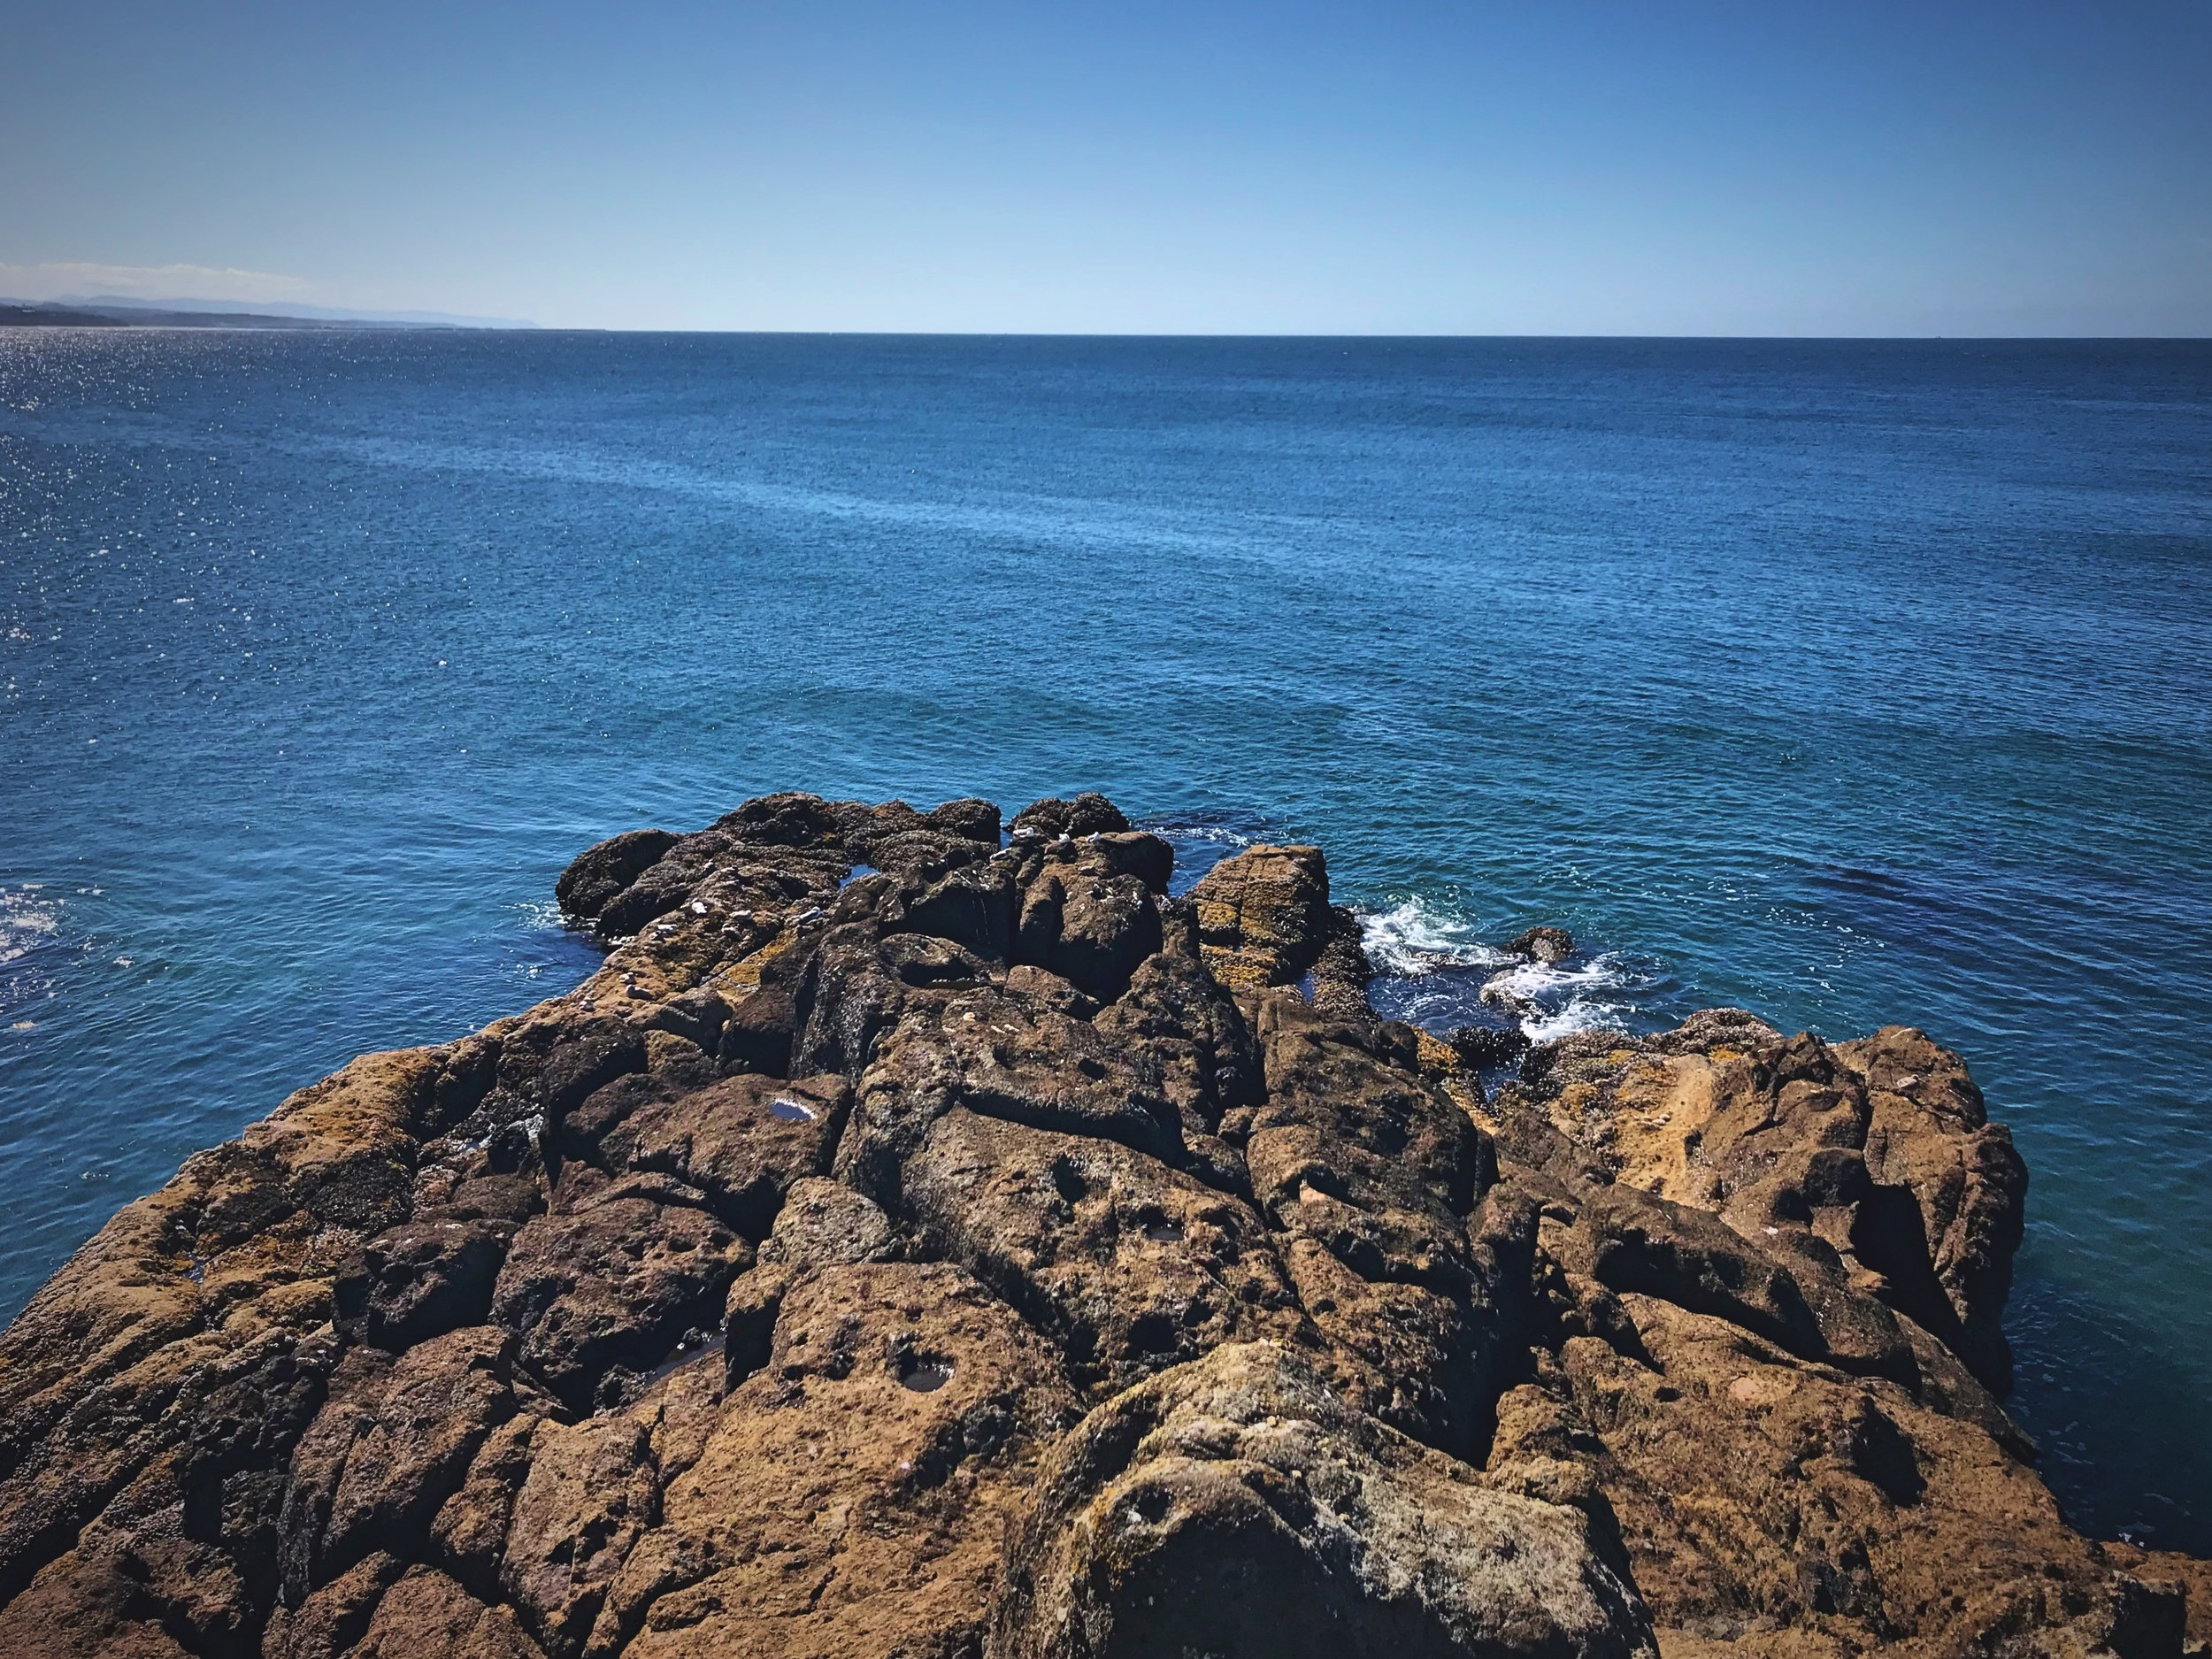 At the end of the Quarry Cove Trail, you can scramble onto outcrops of rock that go out into the cove.